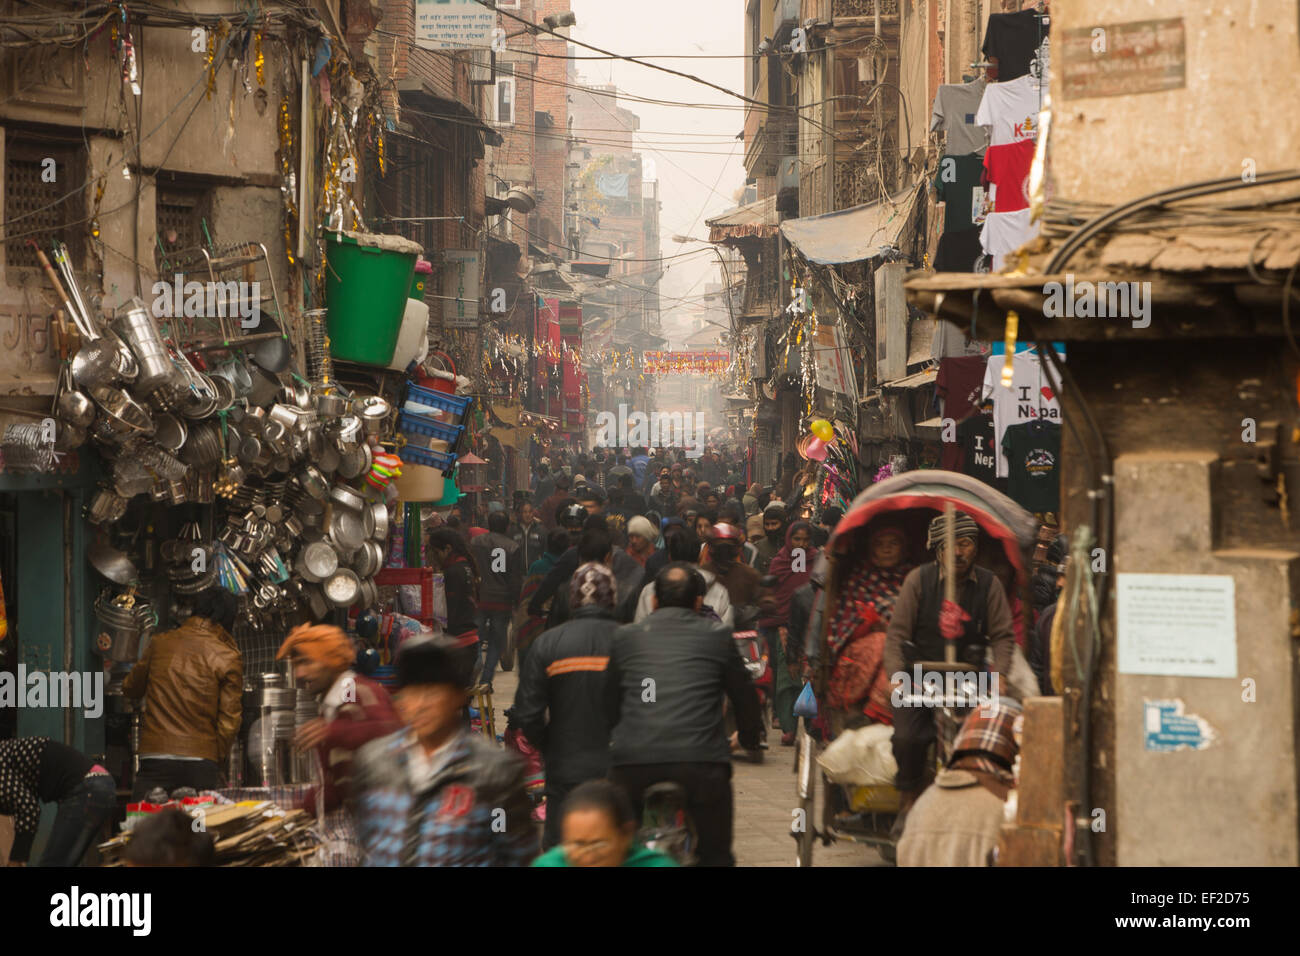 Crowded streets of downtown Kathmandu, Nepal. - Stock Image